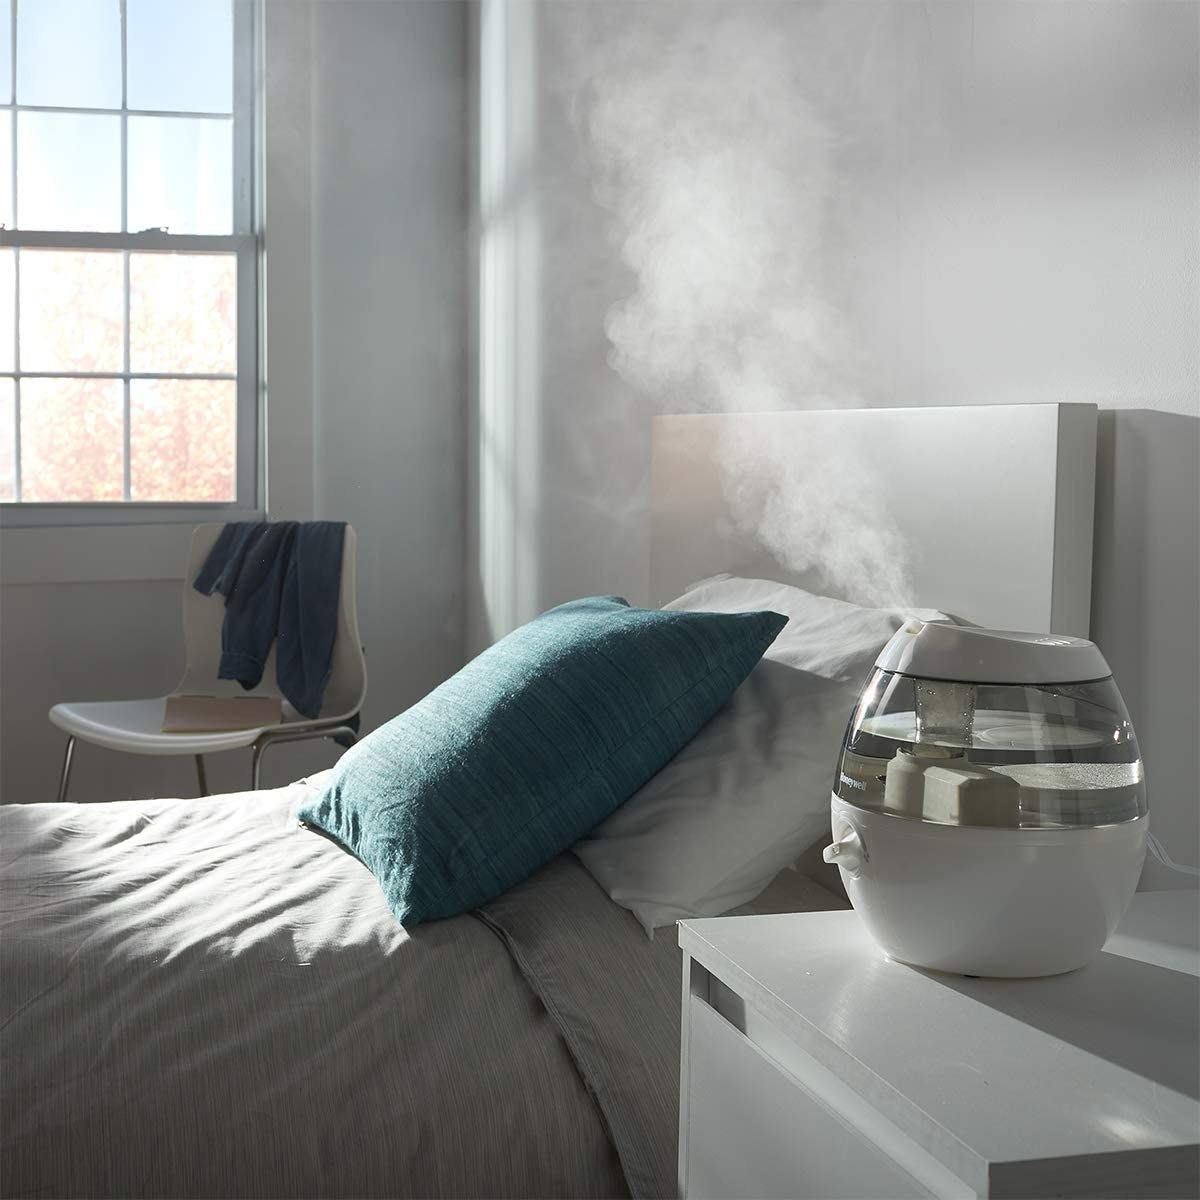 The humidifier on a nightstand, gently misting the room